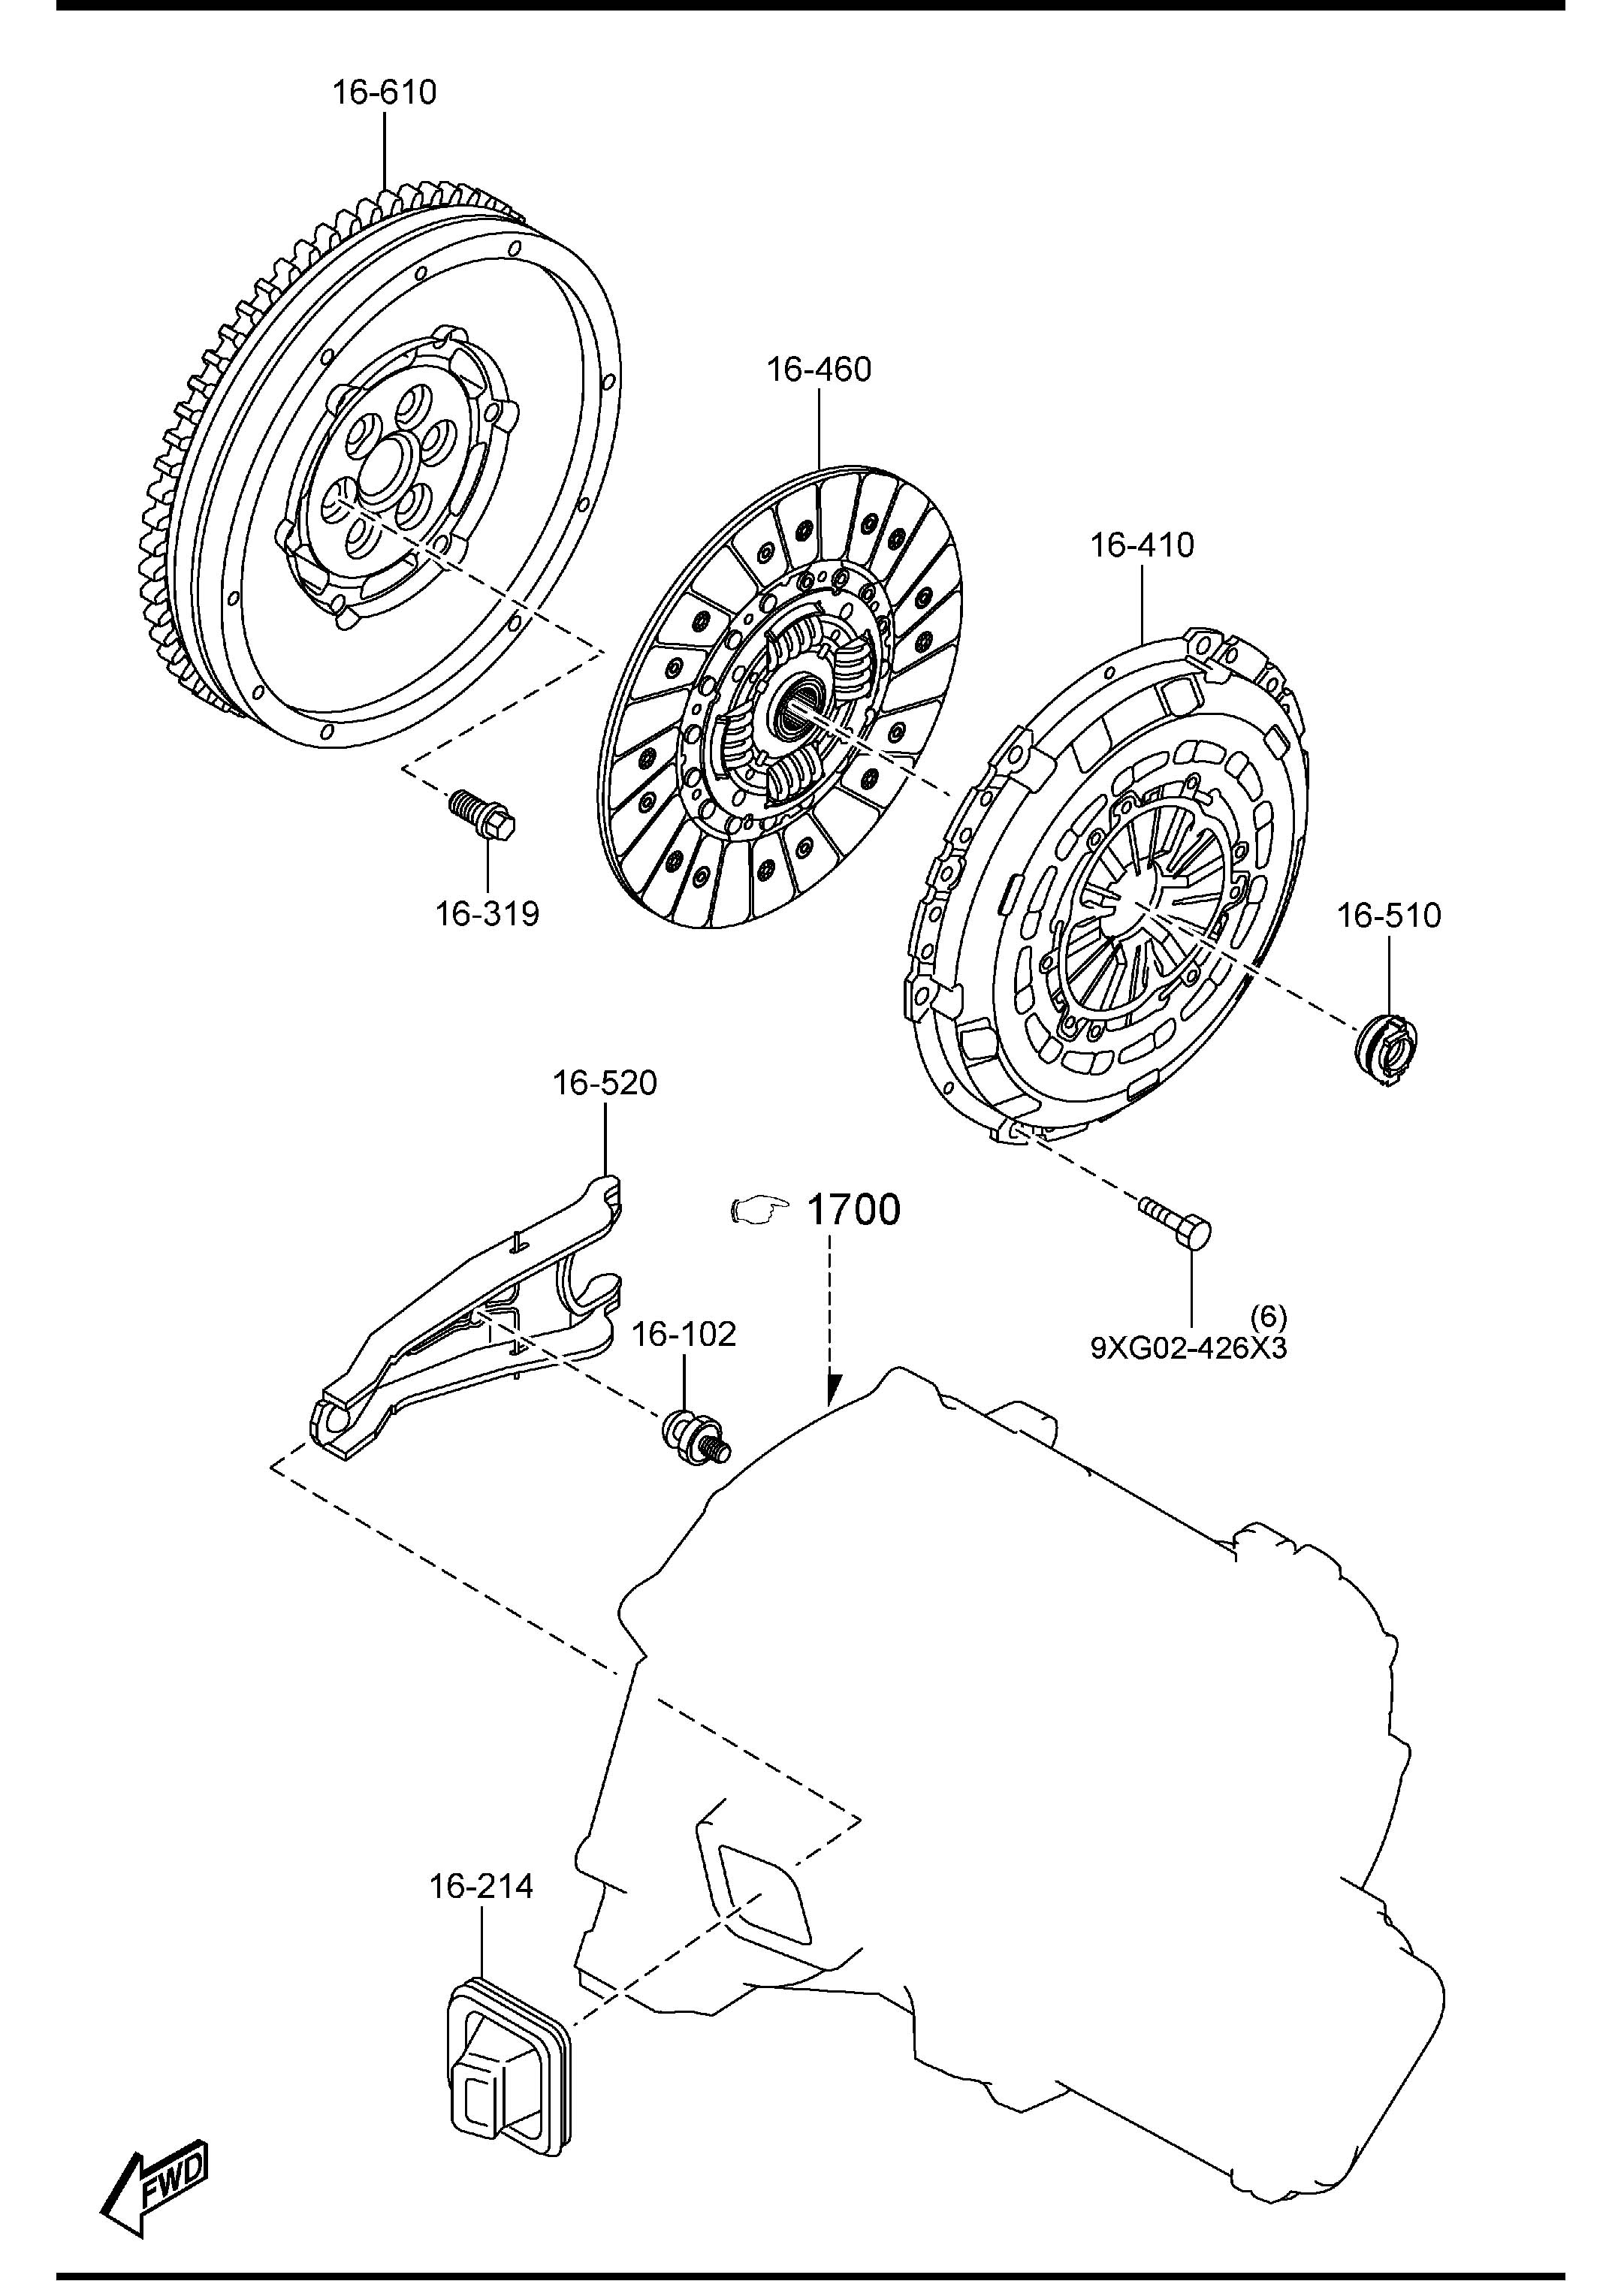 Diagram CLUTCH DISC & COVER (6-SPEED)(2300CC) for your Mazda Mazda 3